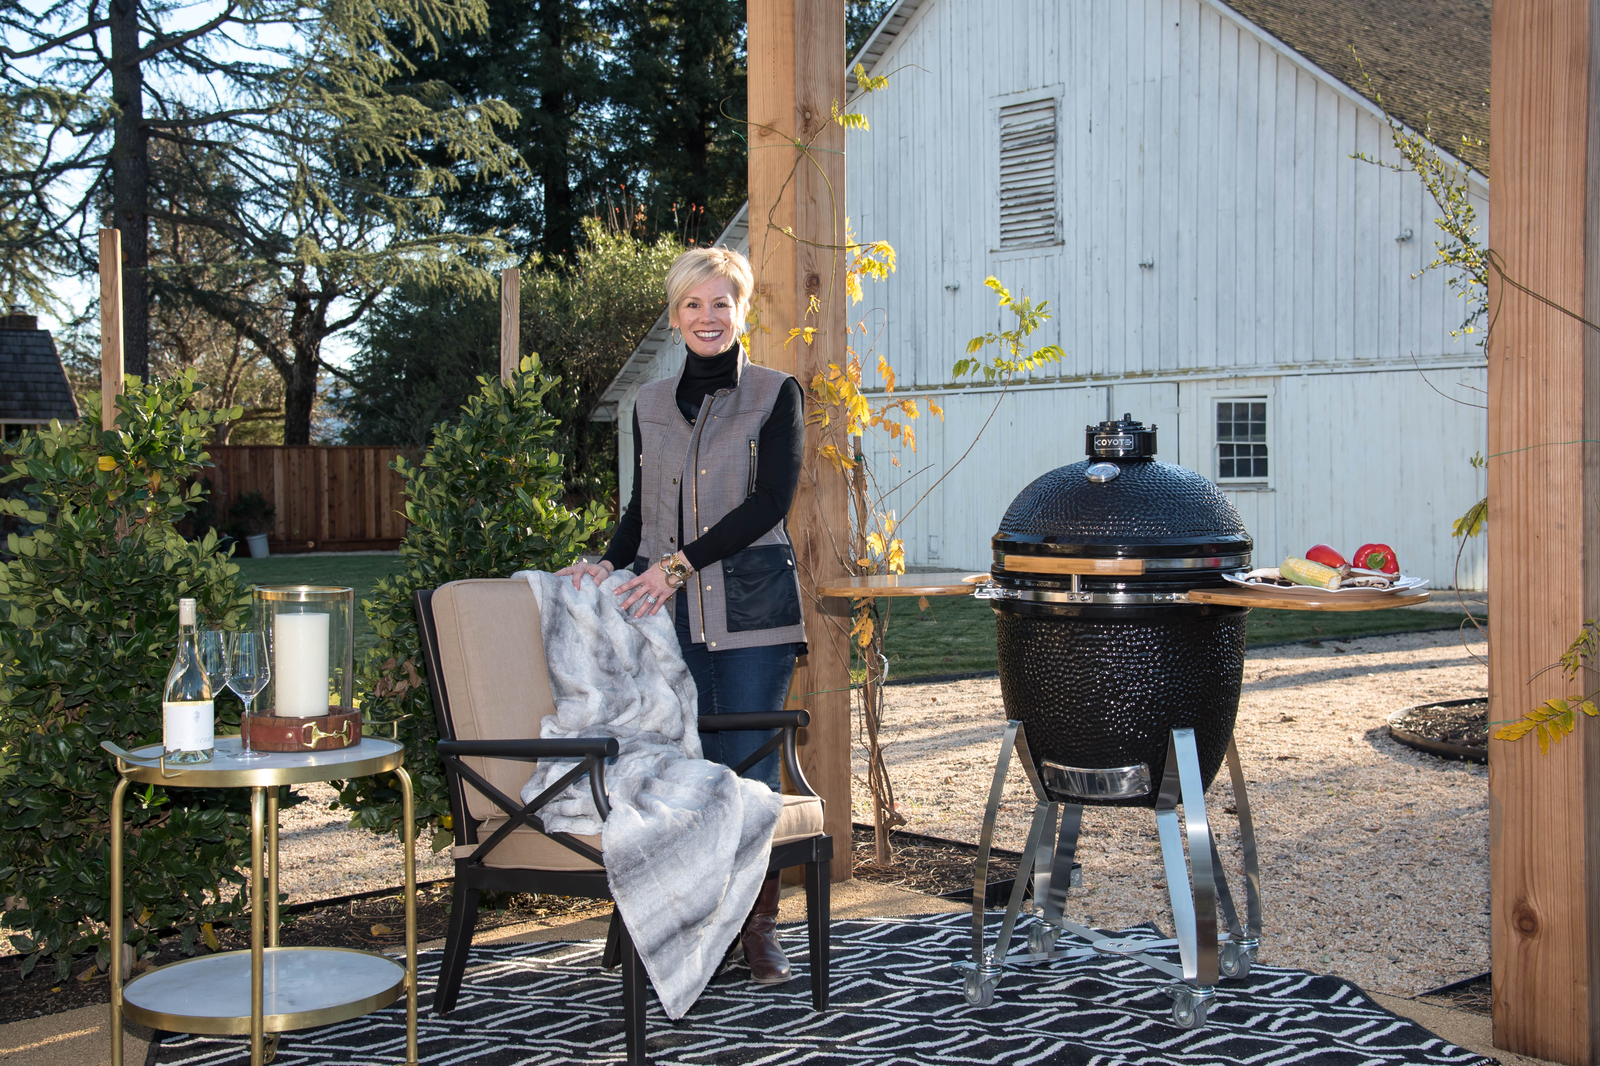 Award Winning Designer Kerrie Kelly Shares 10 Top Tips For Designing The  Ultimate Outdoor Living Space.